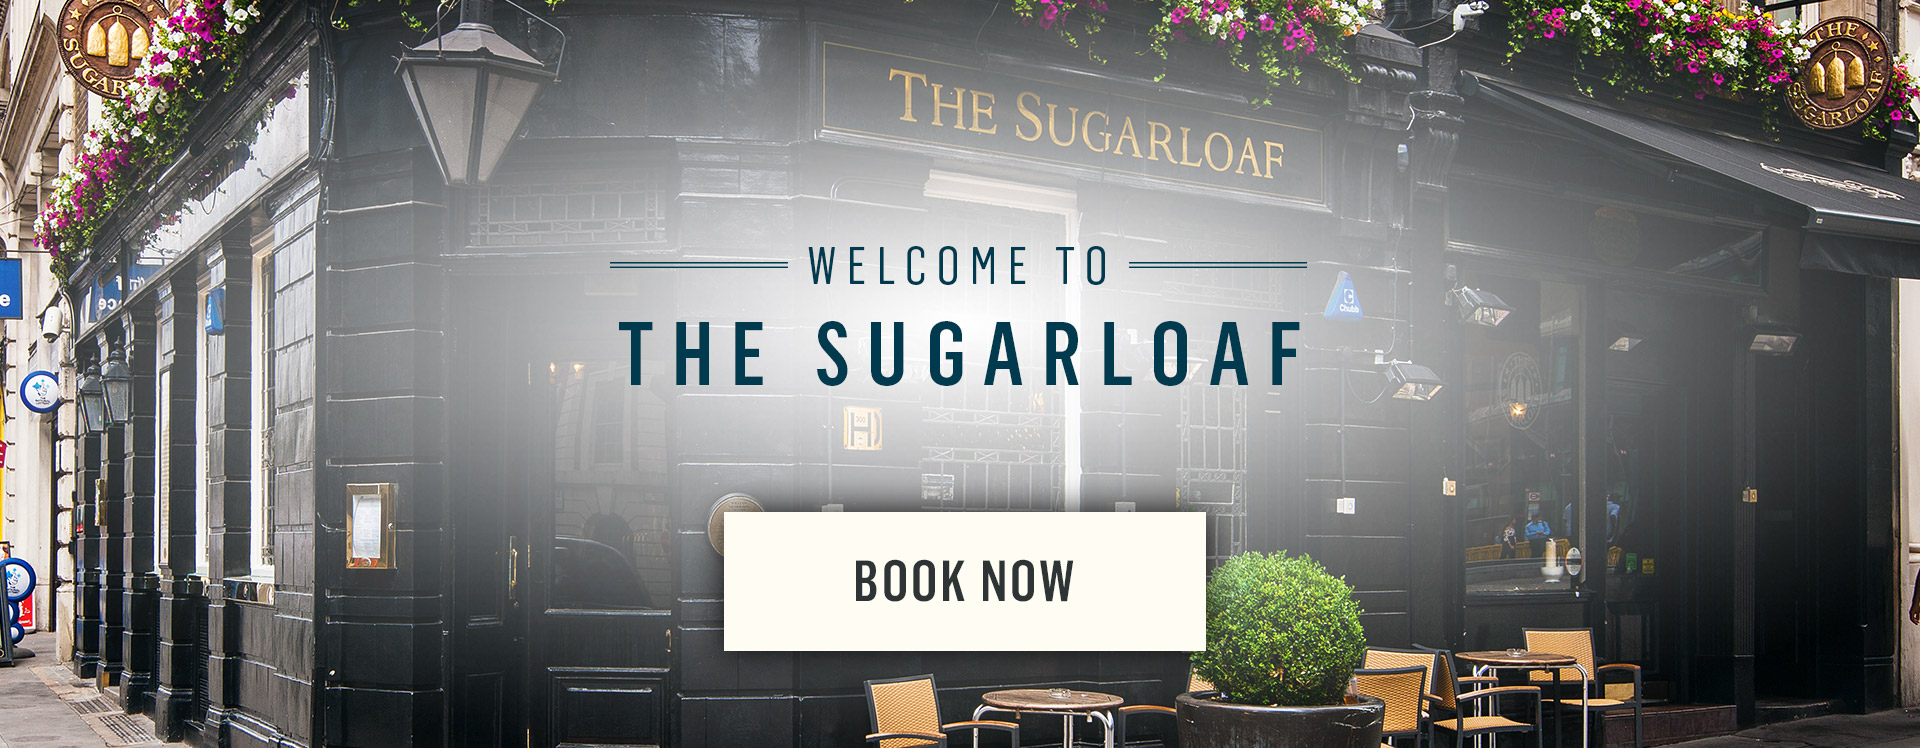 Welcome to The Sugar Loaf - Book Now